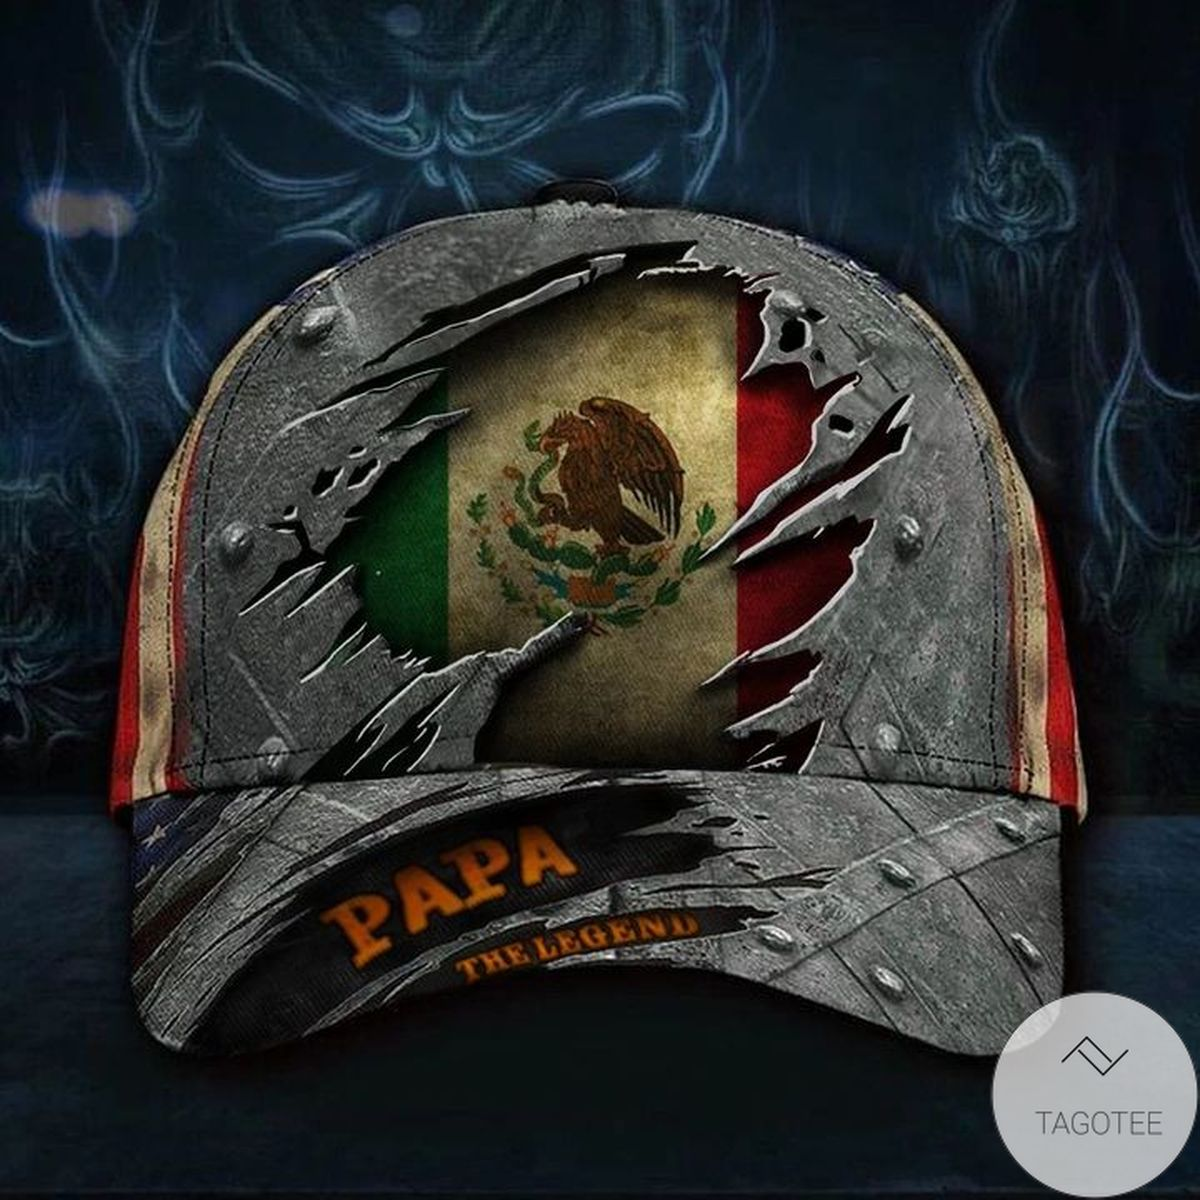 Luxury Mexico Papa The Legend 3D Hat Vintage USA Flag Cap Sentimental Gifts For Dad From Daughter